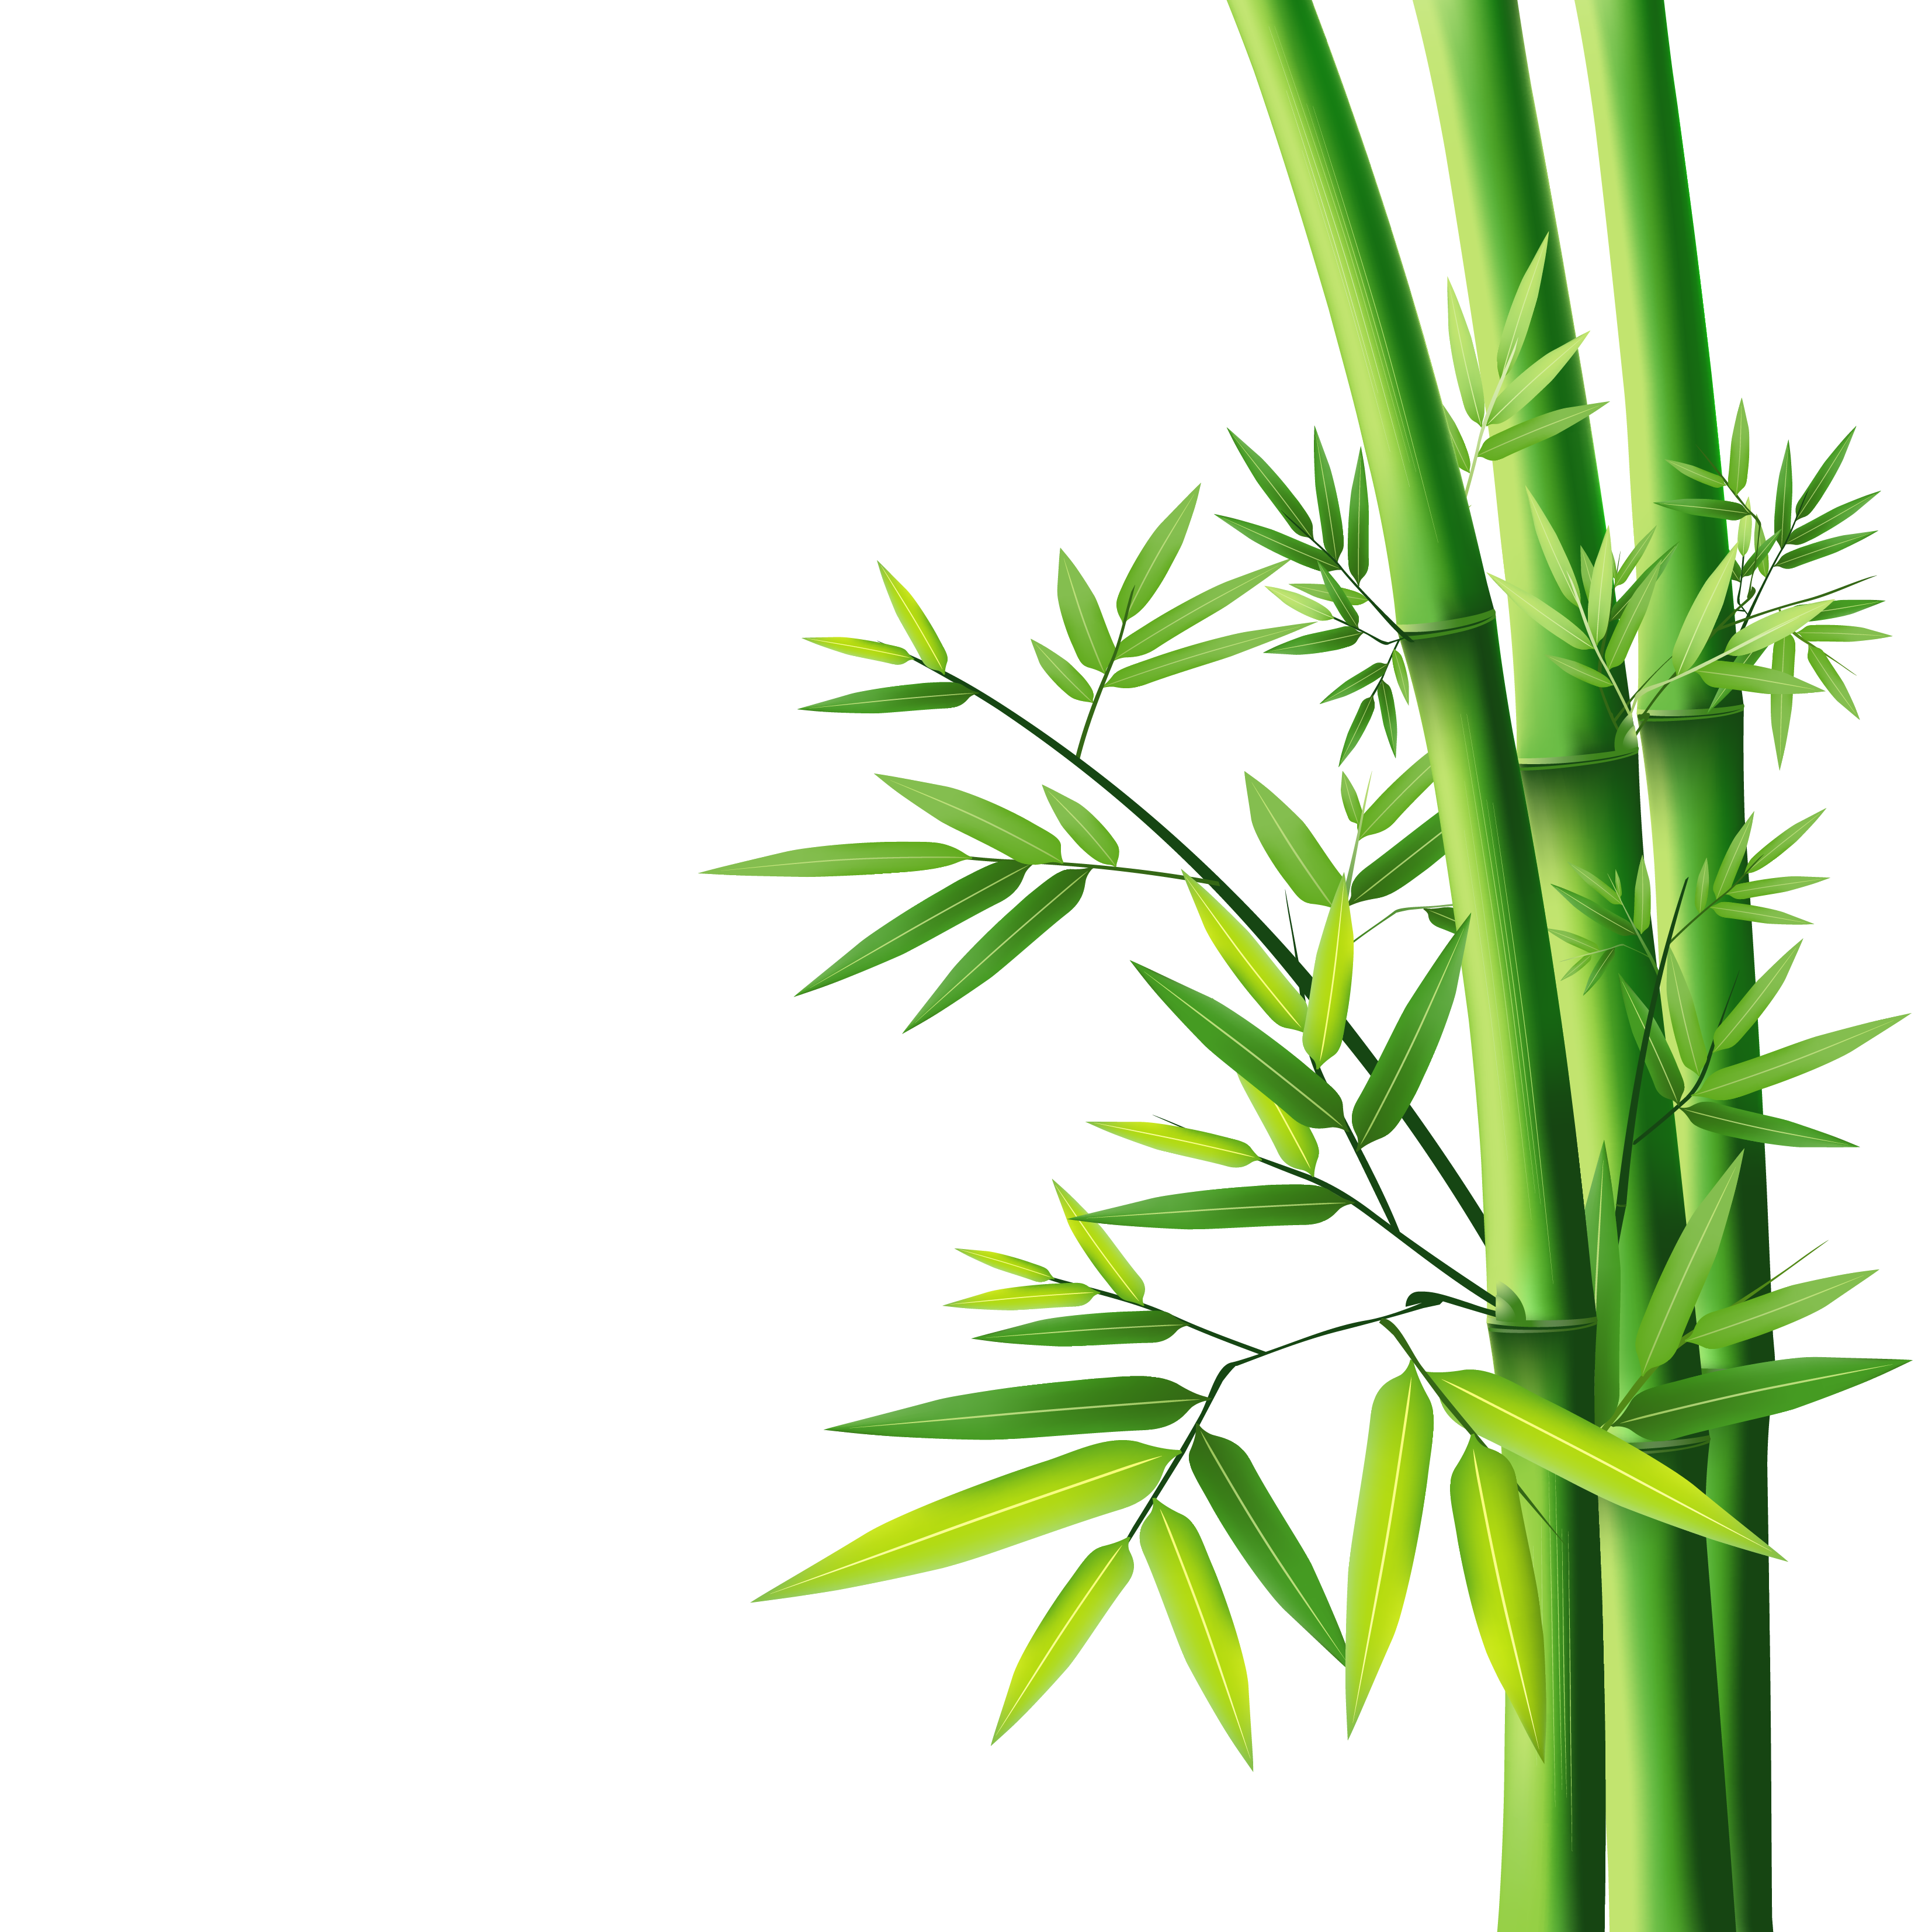 Cane transparent bamboo. Png images free download